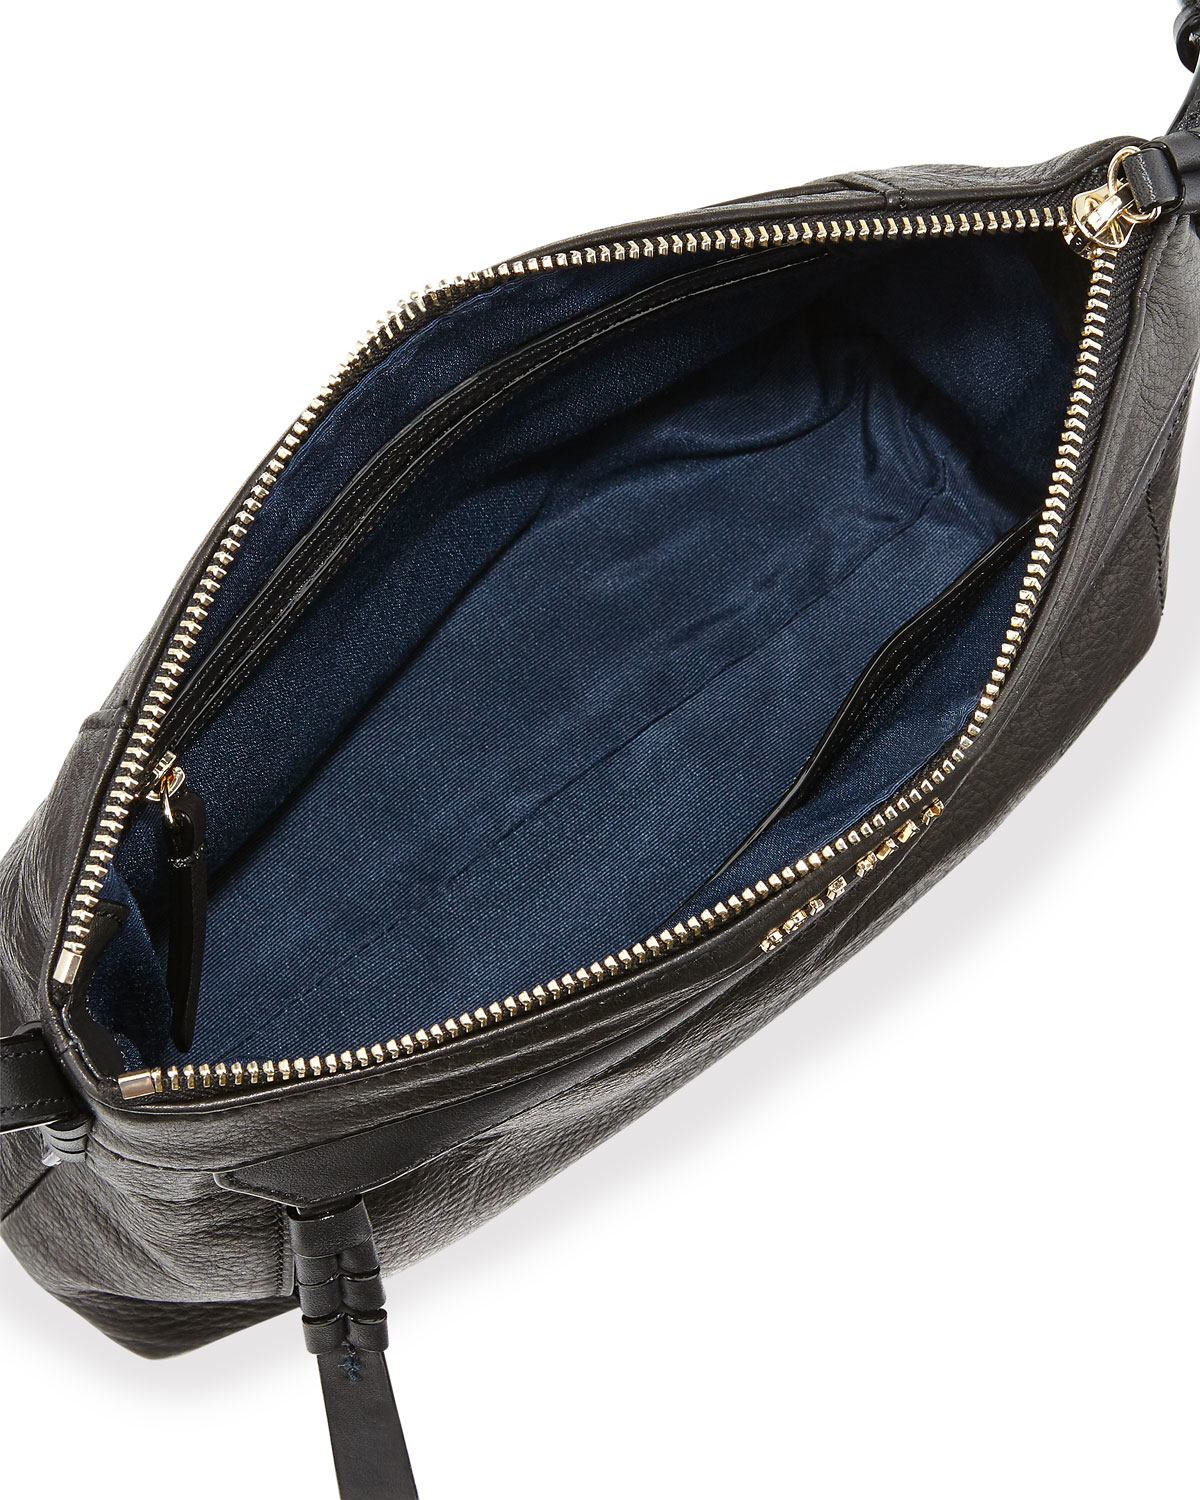 Lyst - Cole Haan Felicity East-west Leather Crossbody Bag in Black